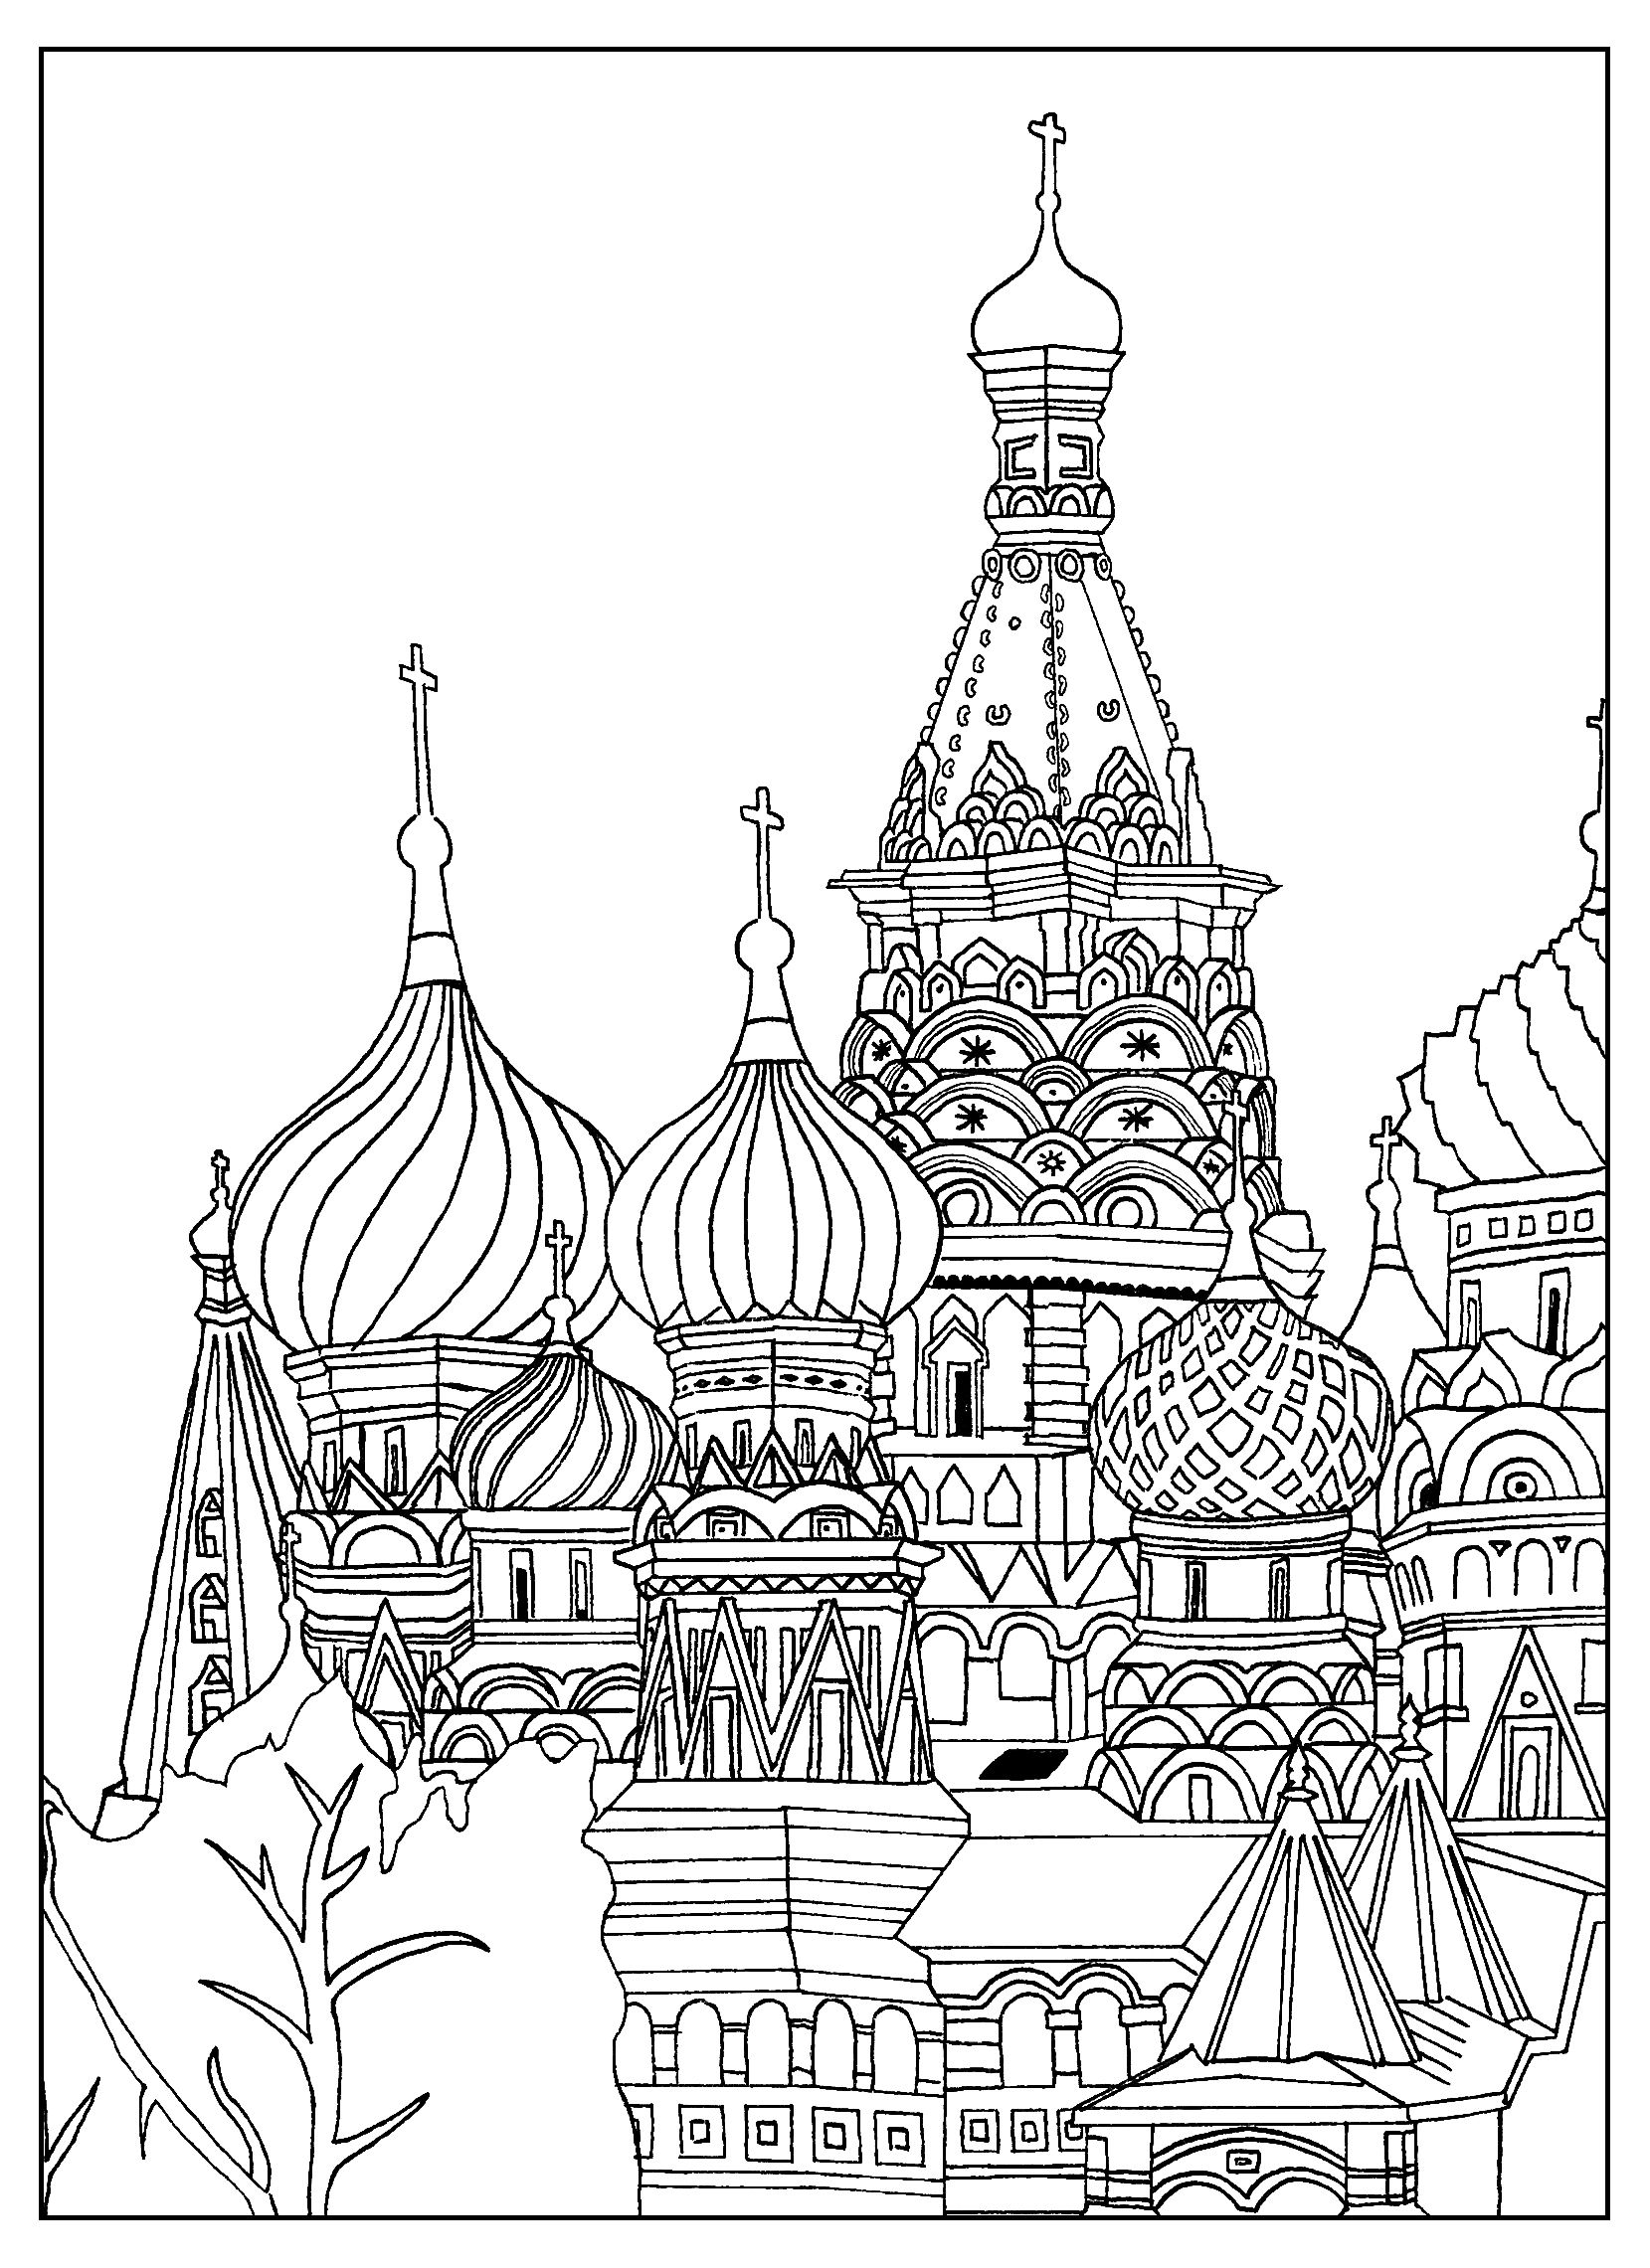 Free Adult Coloring Page Of The Saint Basil S Cathedral